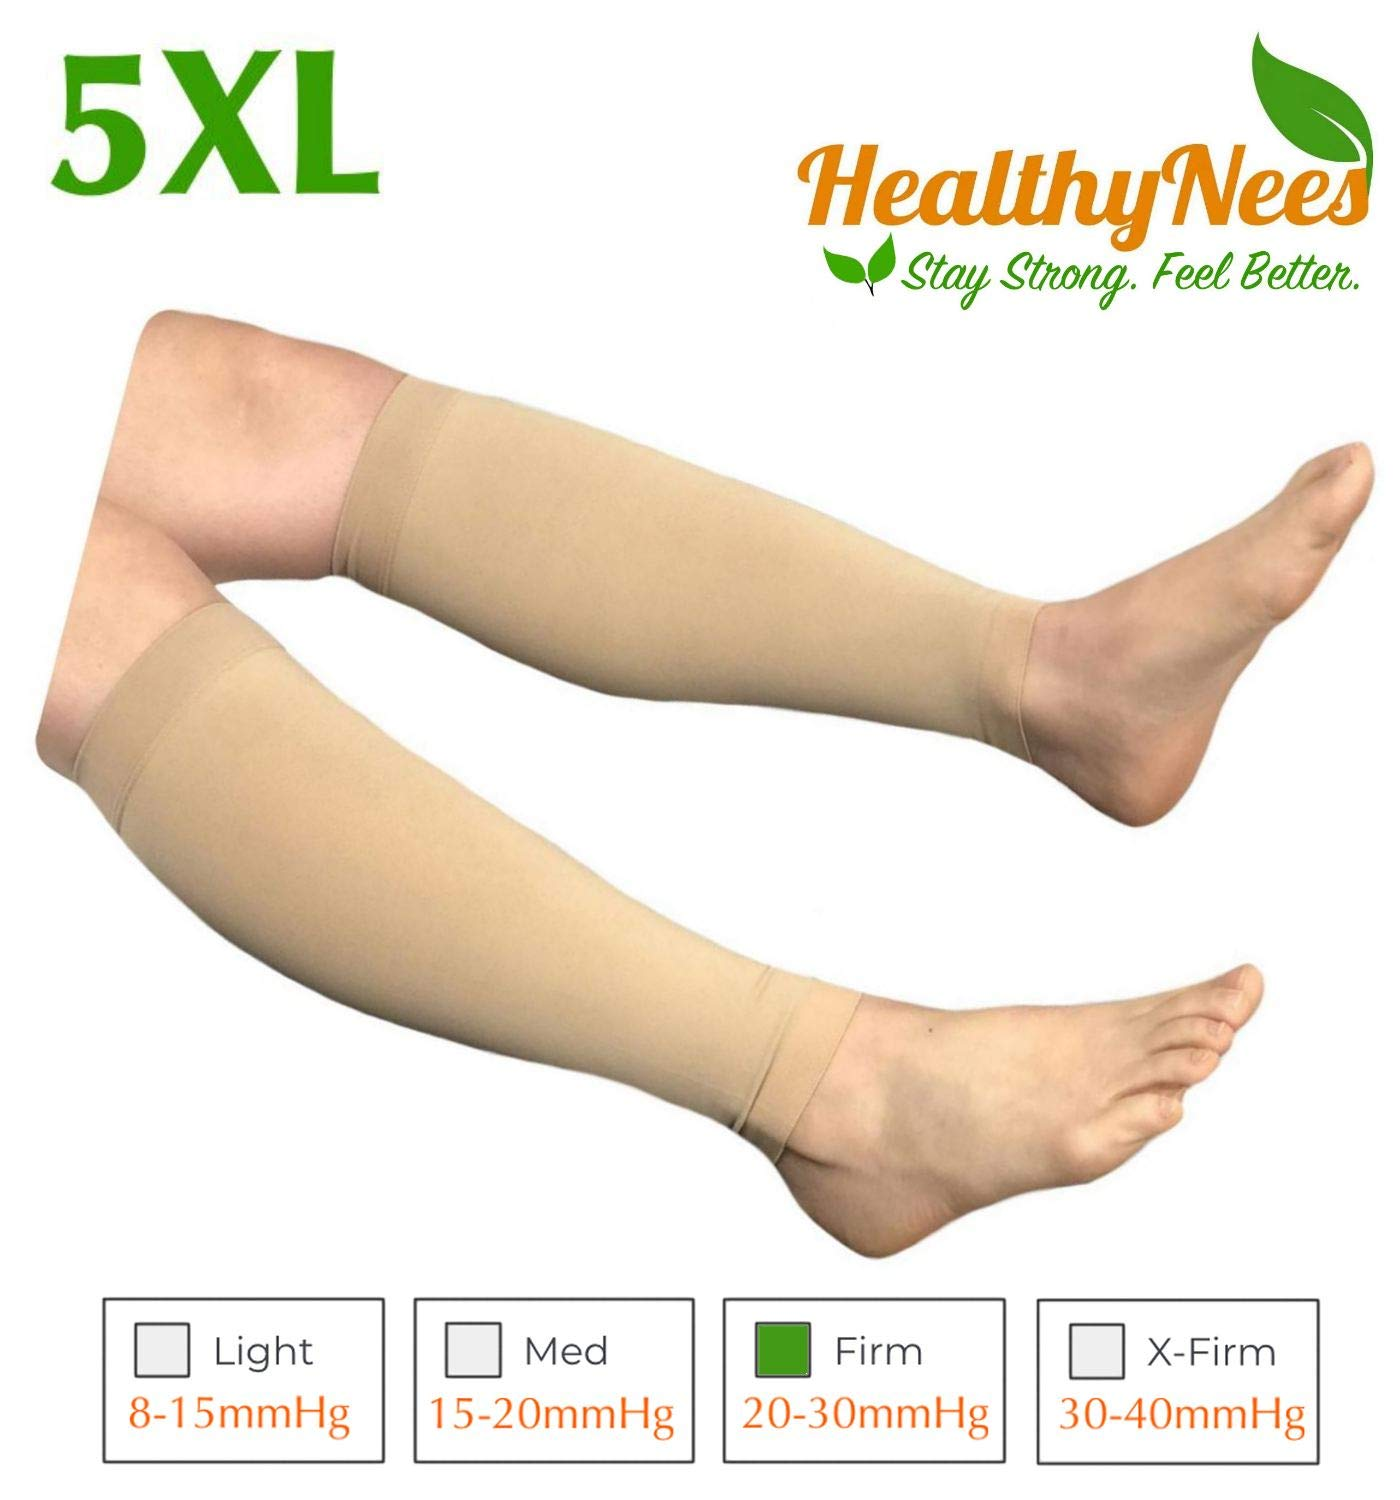 HealthyNees Shin Calf Sleeve 20-30 mmHg Medical Compression Circulation Extra Wide Plus Size Big Tall Leg Thick Calves Firm Support (Beige, Extra Wide Calf 5XL) by HealthyNees